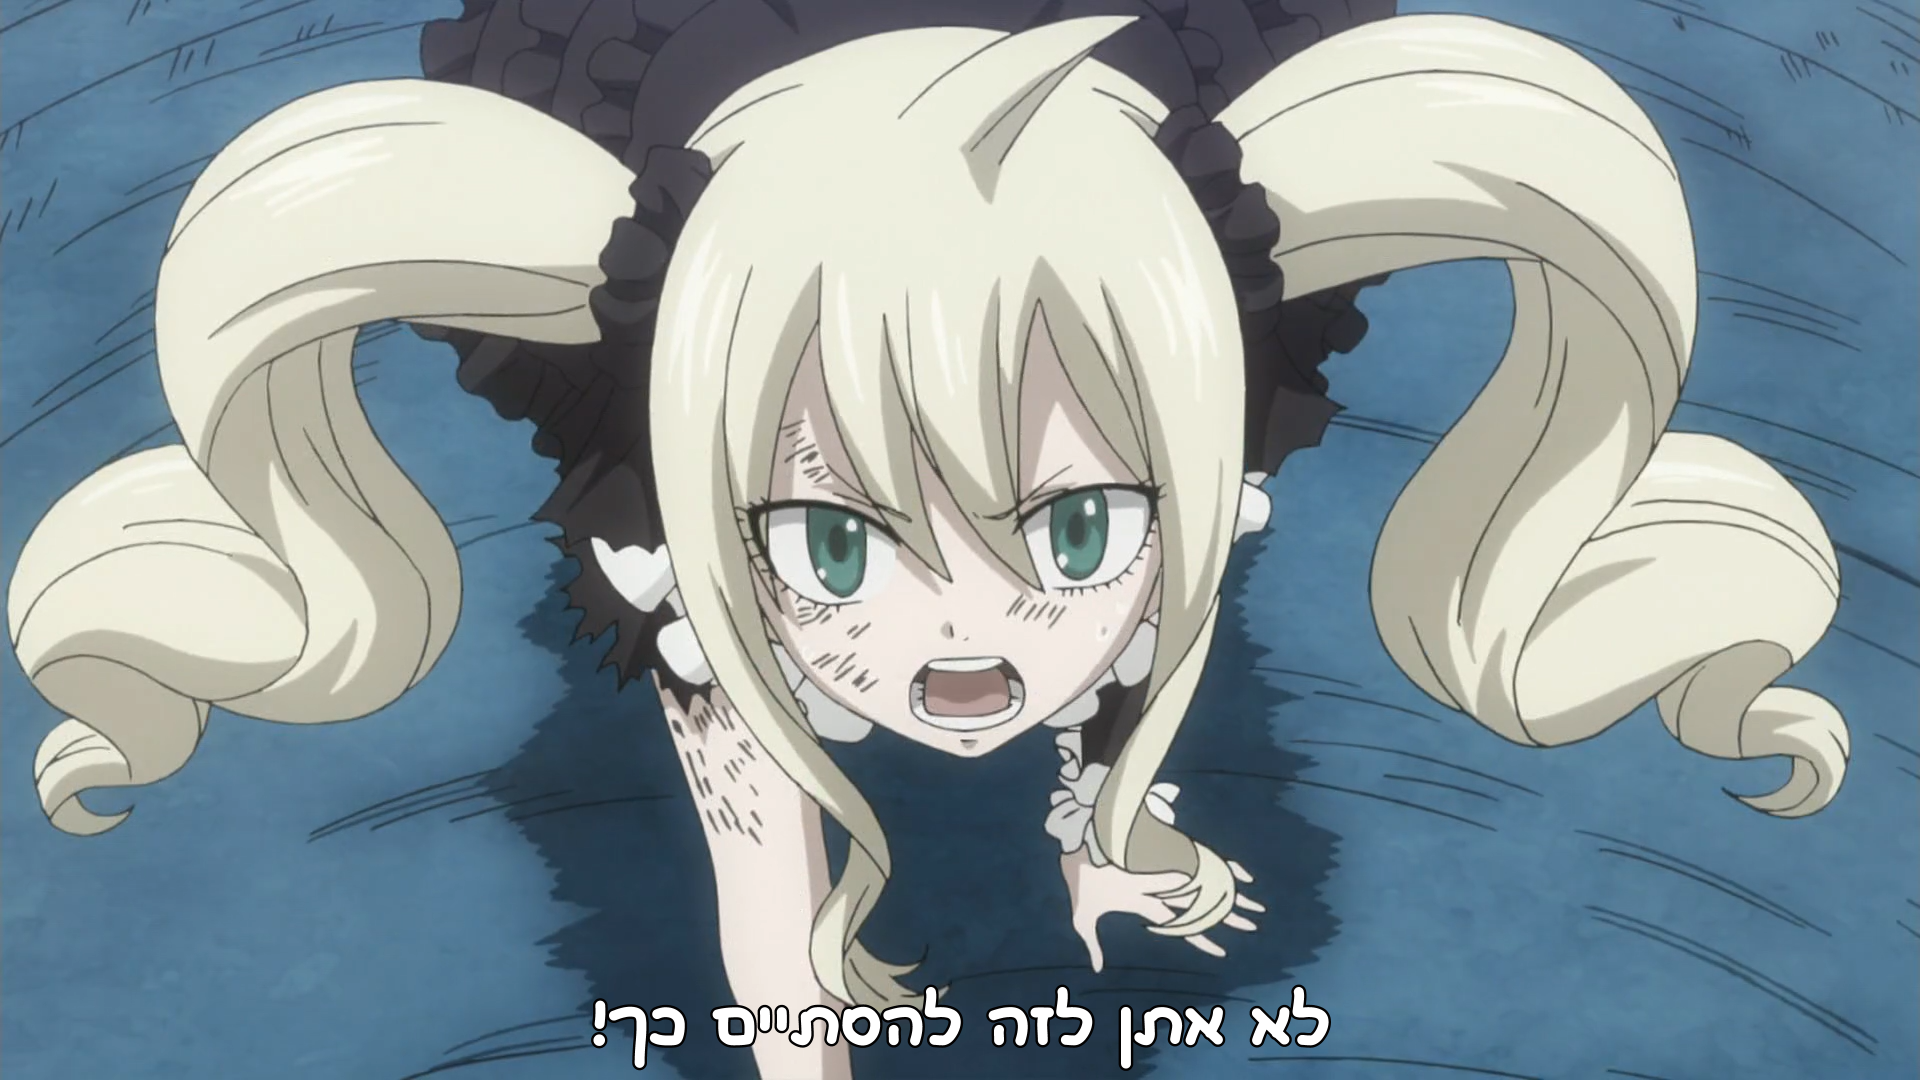 [HorribleSubs] Fairy Tail S2 - 99 [1080p]_001_11606